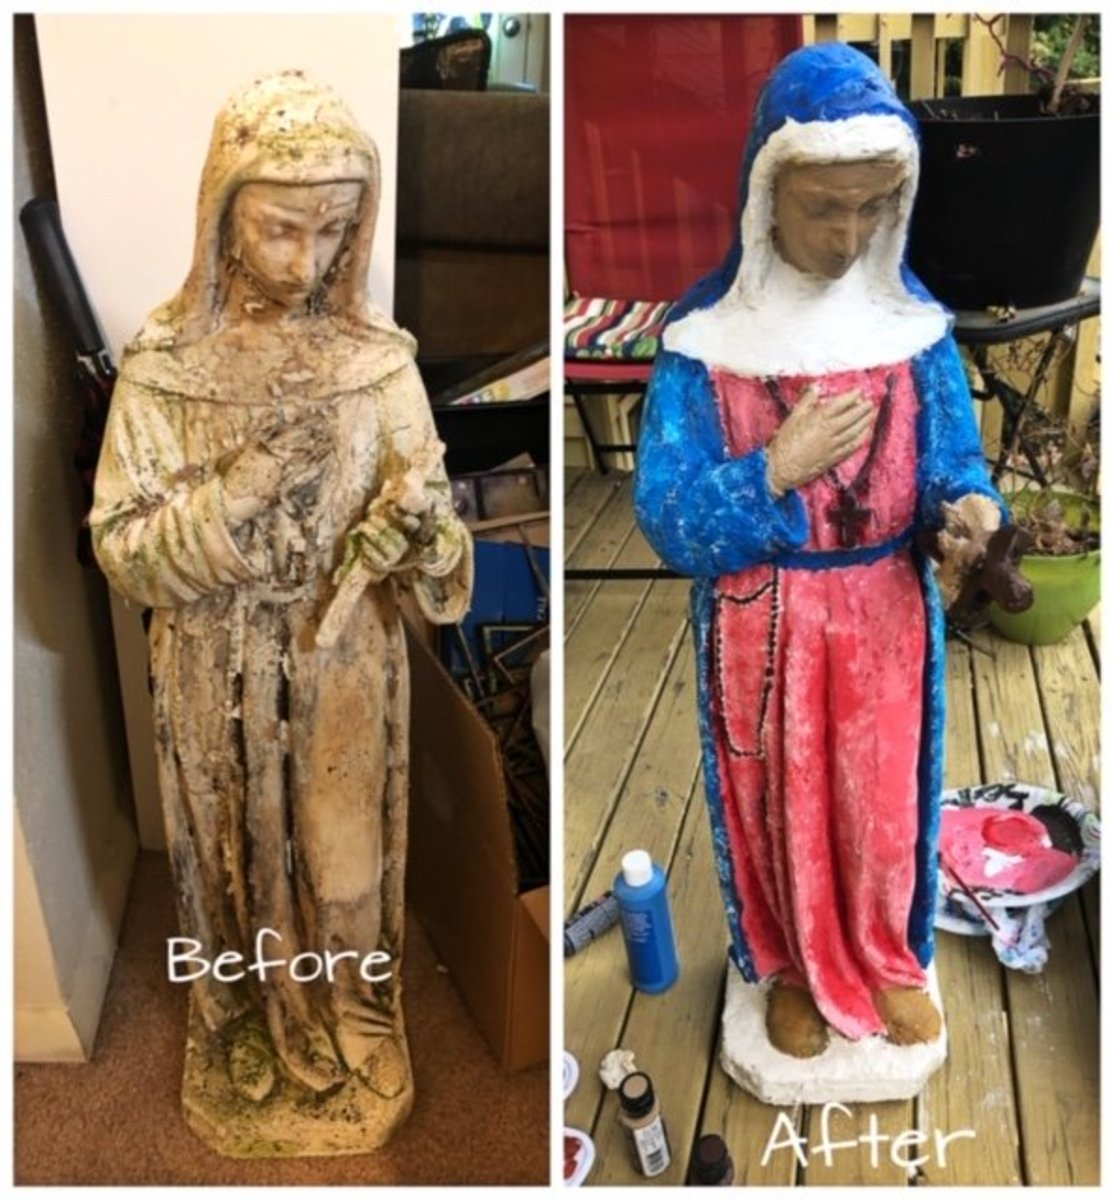 The before and after photos of a statue restoration.